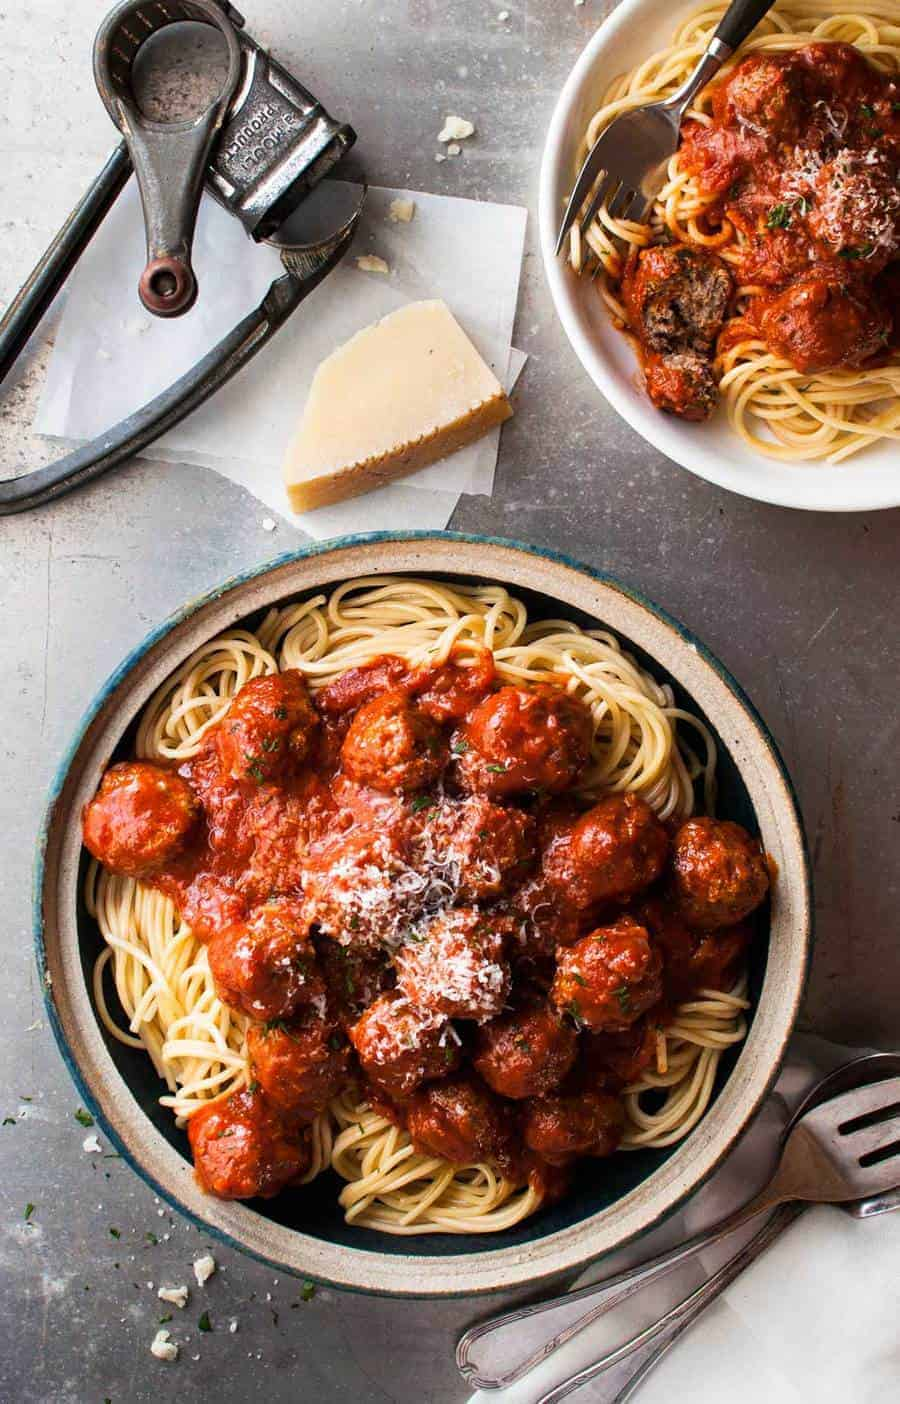 Classic Italian Meatballs - 2 little changes to the usual to make these extra soft, moist and with extra flavour! www.recipetineats.com